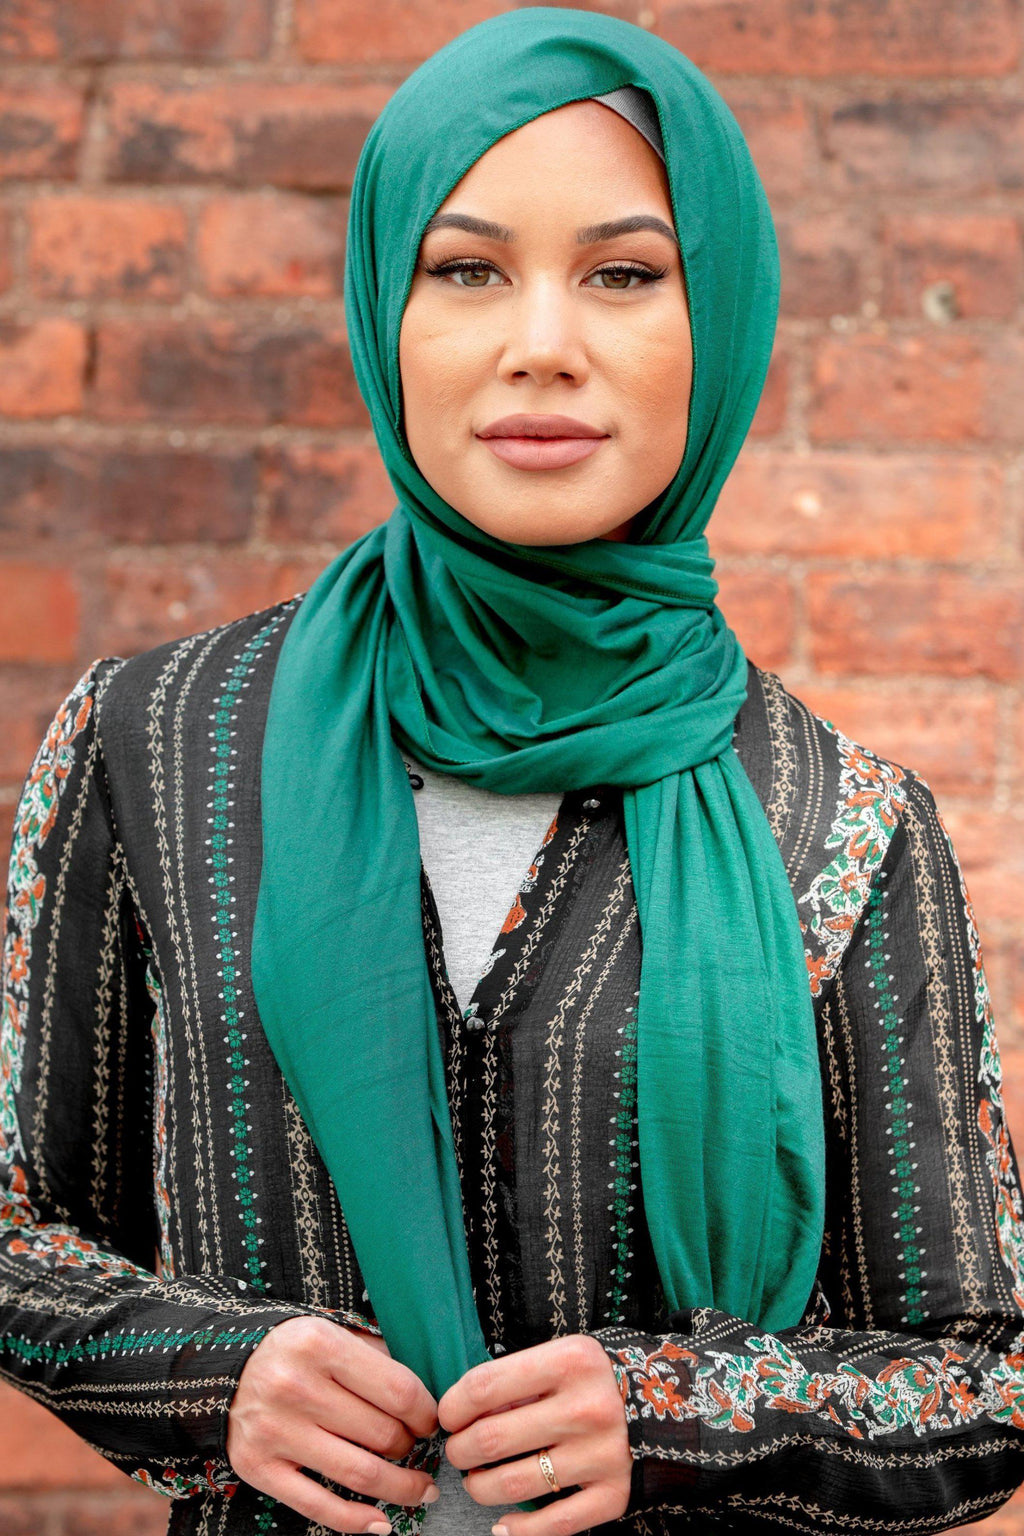 Green Jersey Hijab - Abaya, Hijabs, Jilbabs, on sale now at UrbanModesty.com